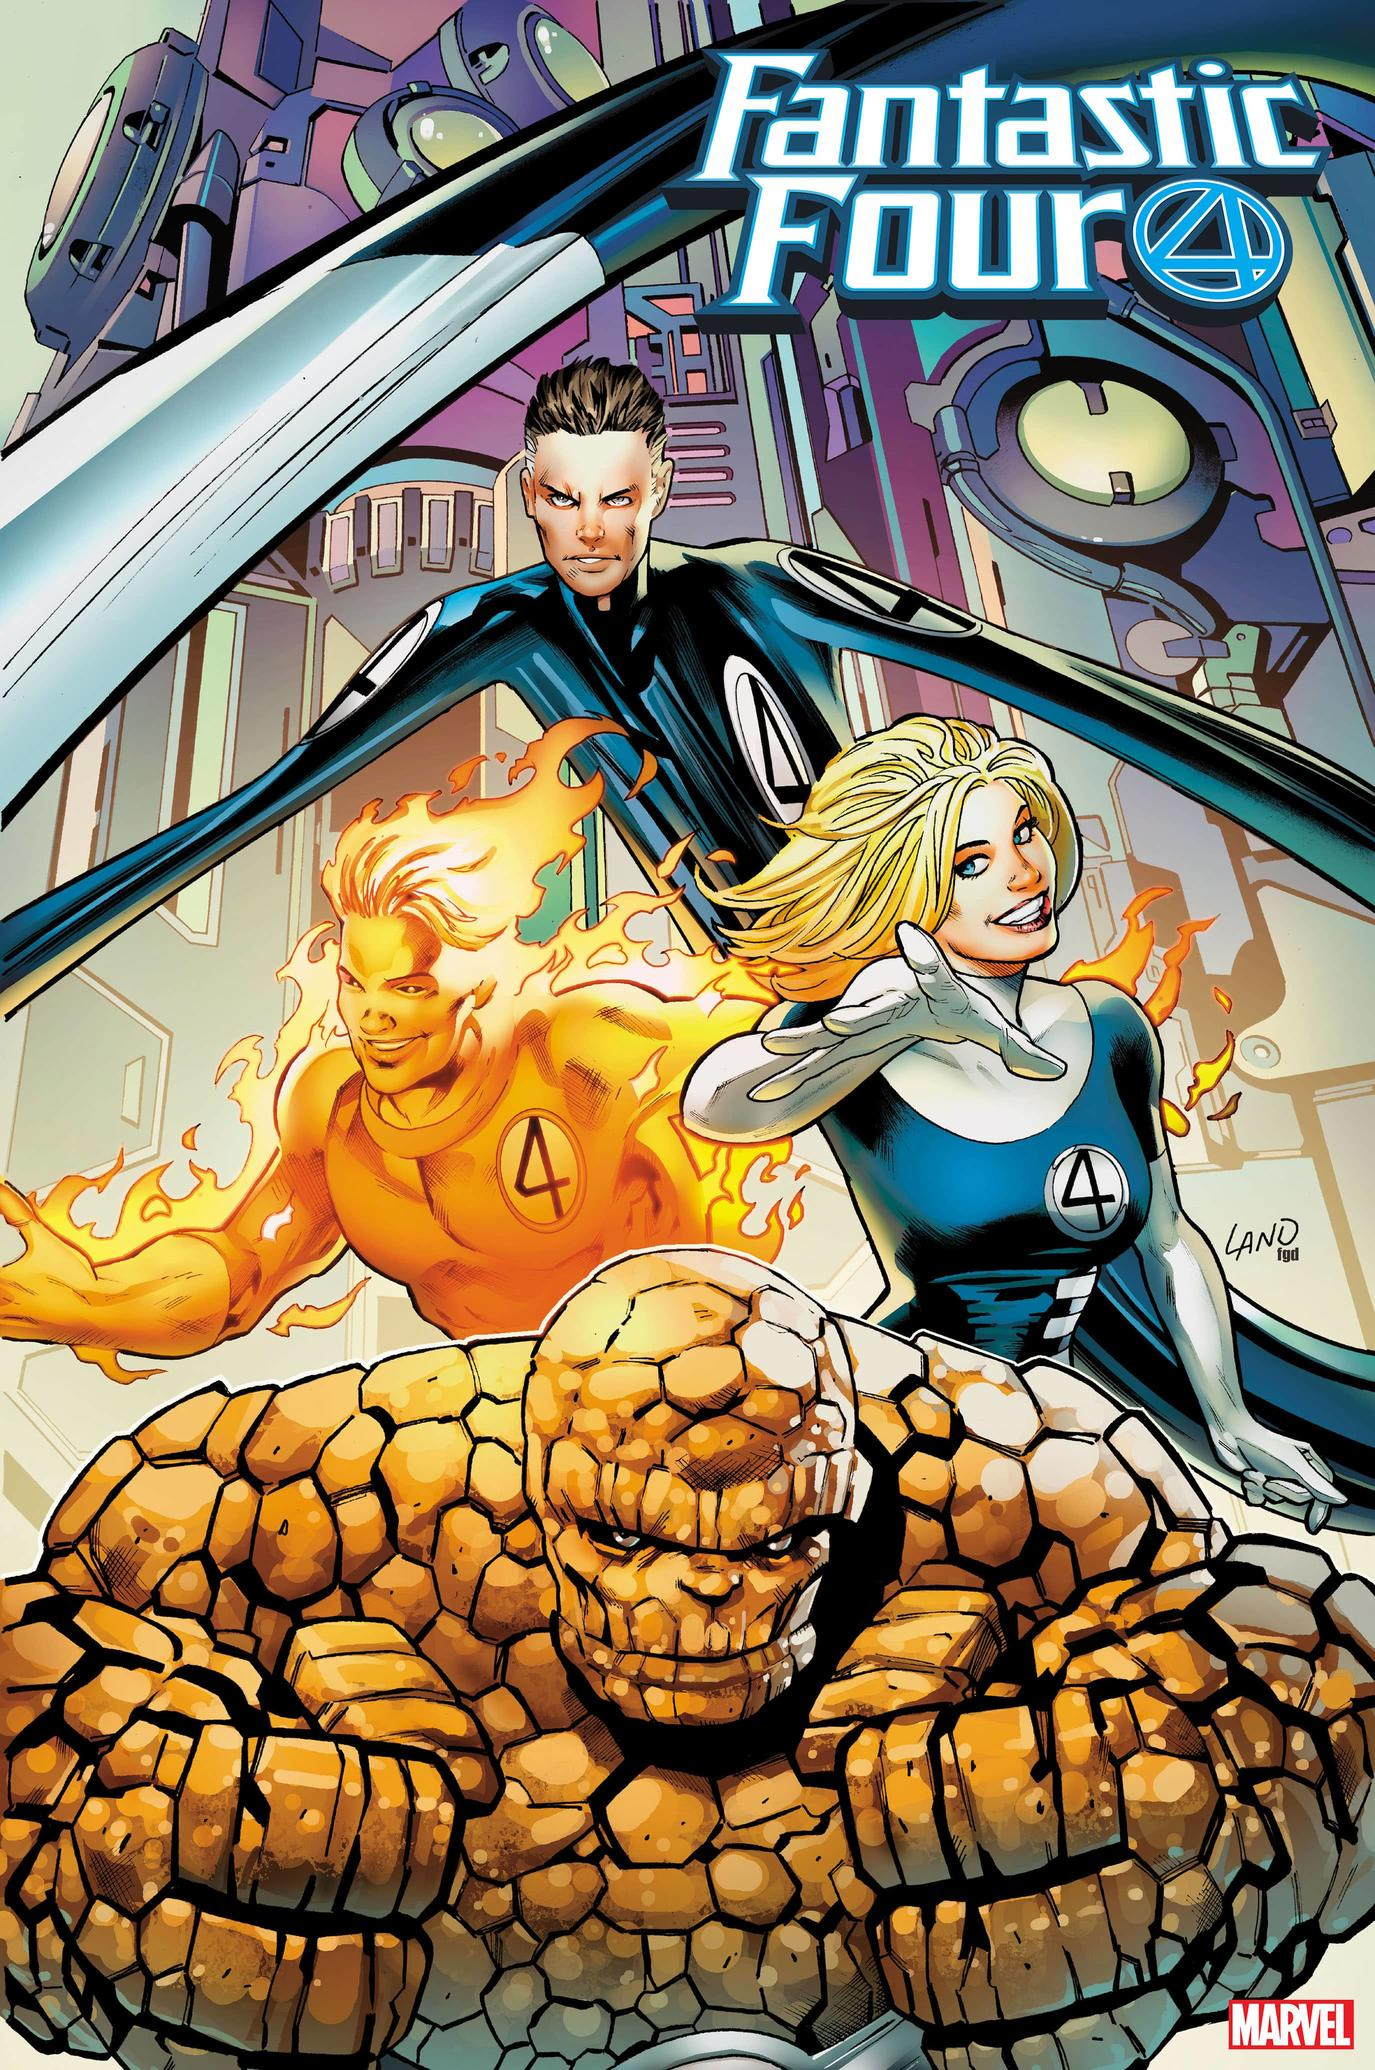 Fantastic Four 2099 variant cover